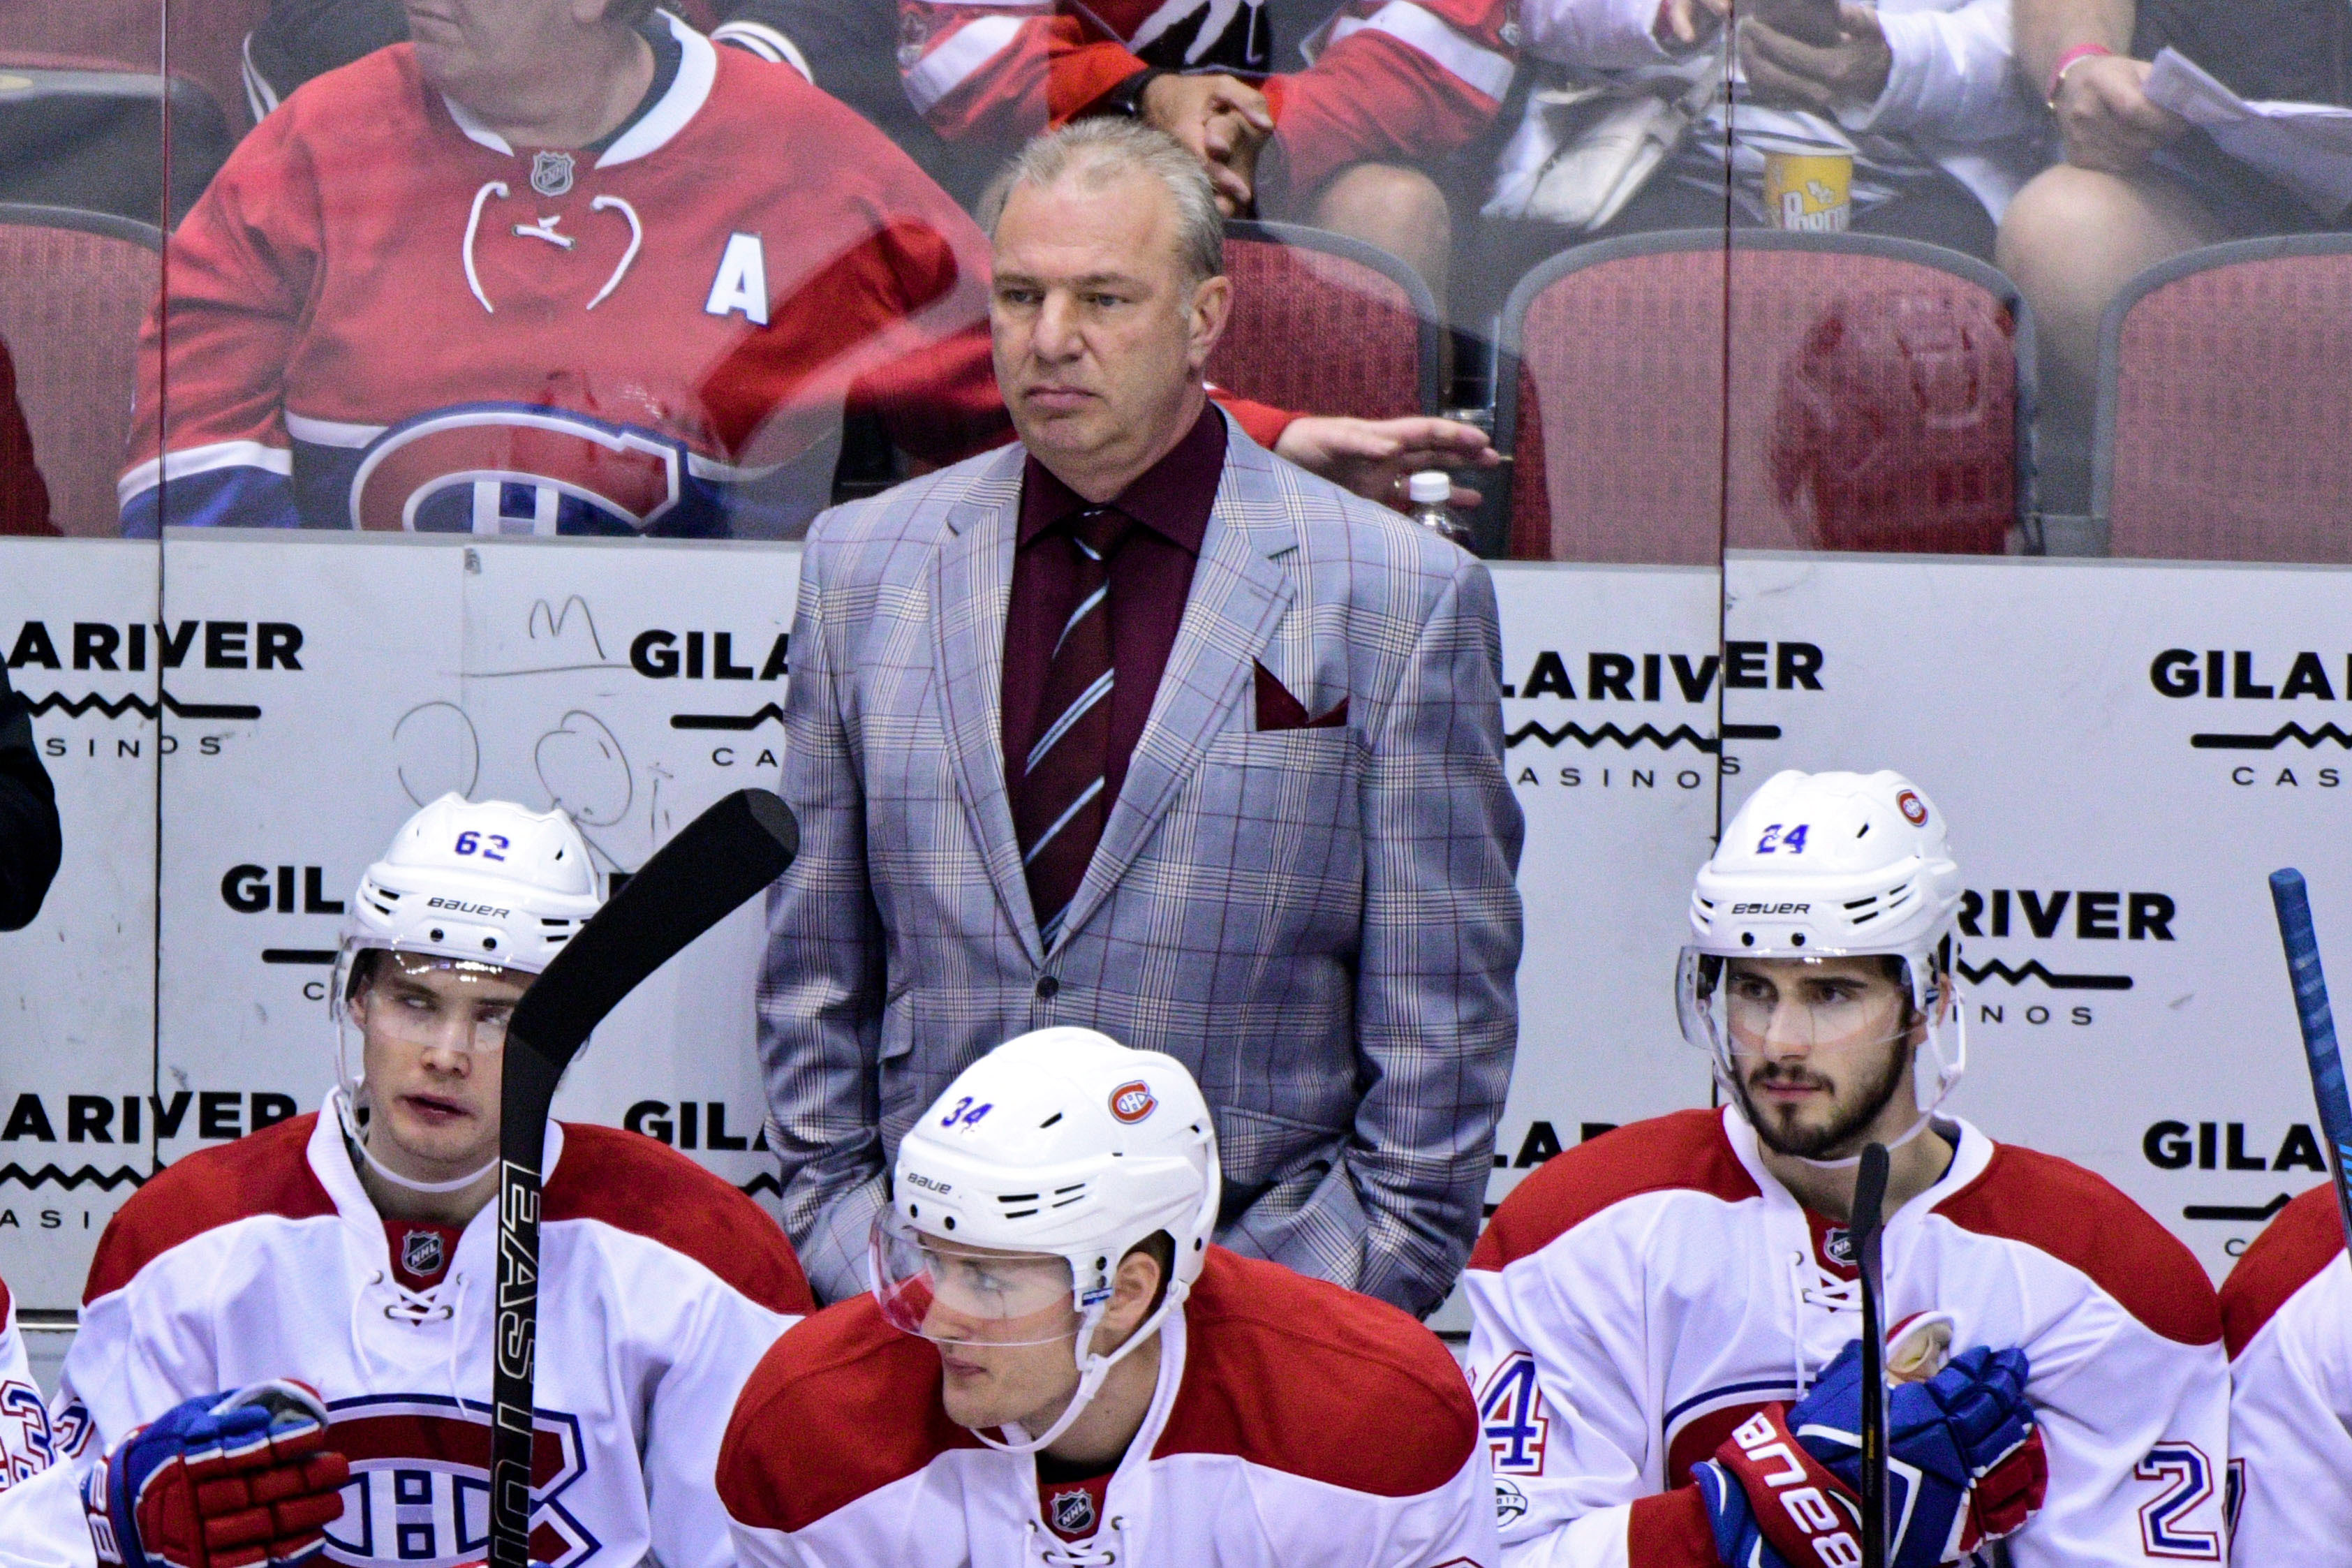 9868515-nhl-montreal-canadiens-at-arizona-coyotes-1